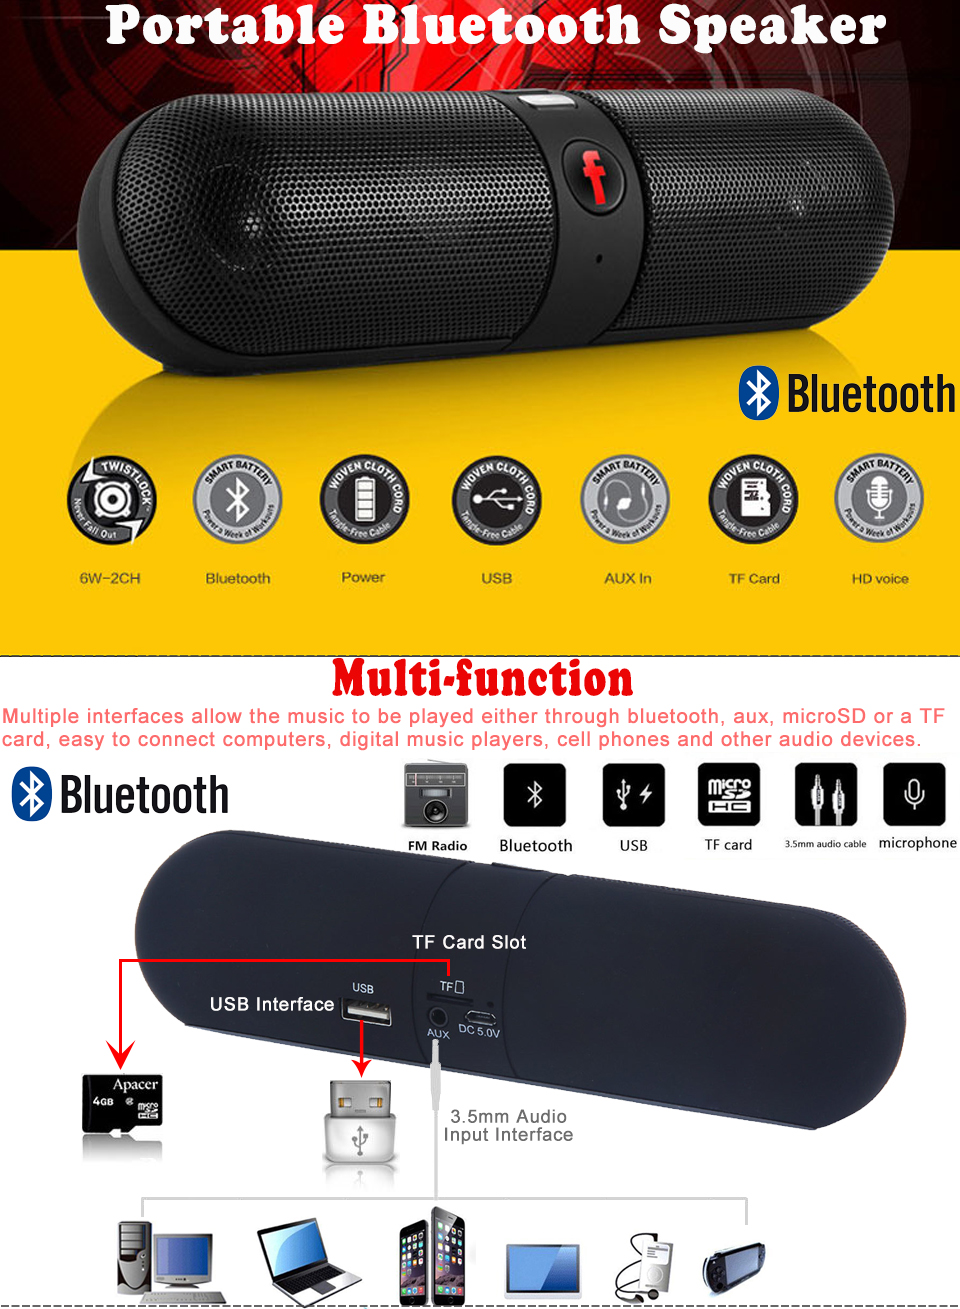 how to connect samsung to marley speakers via bluetooth